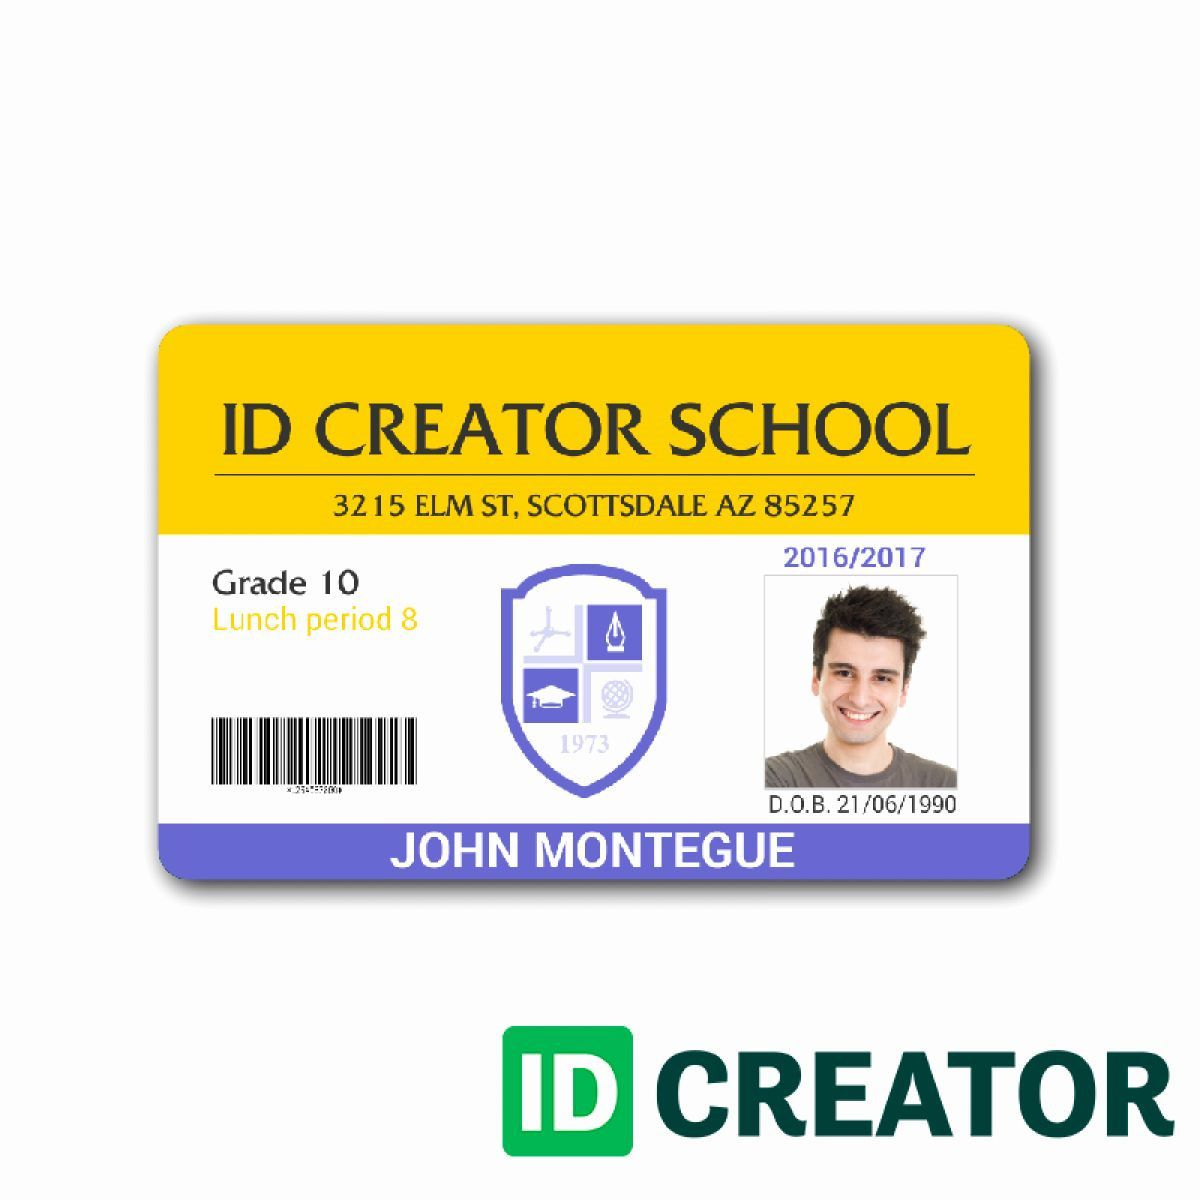 009 Sensational Student Id Card Template Concept  Free Psd Download Word School